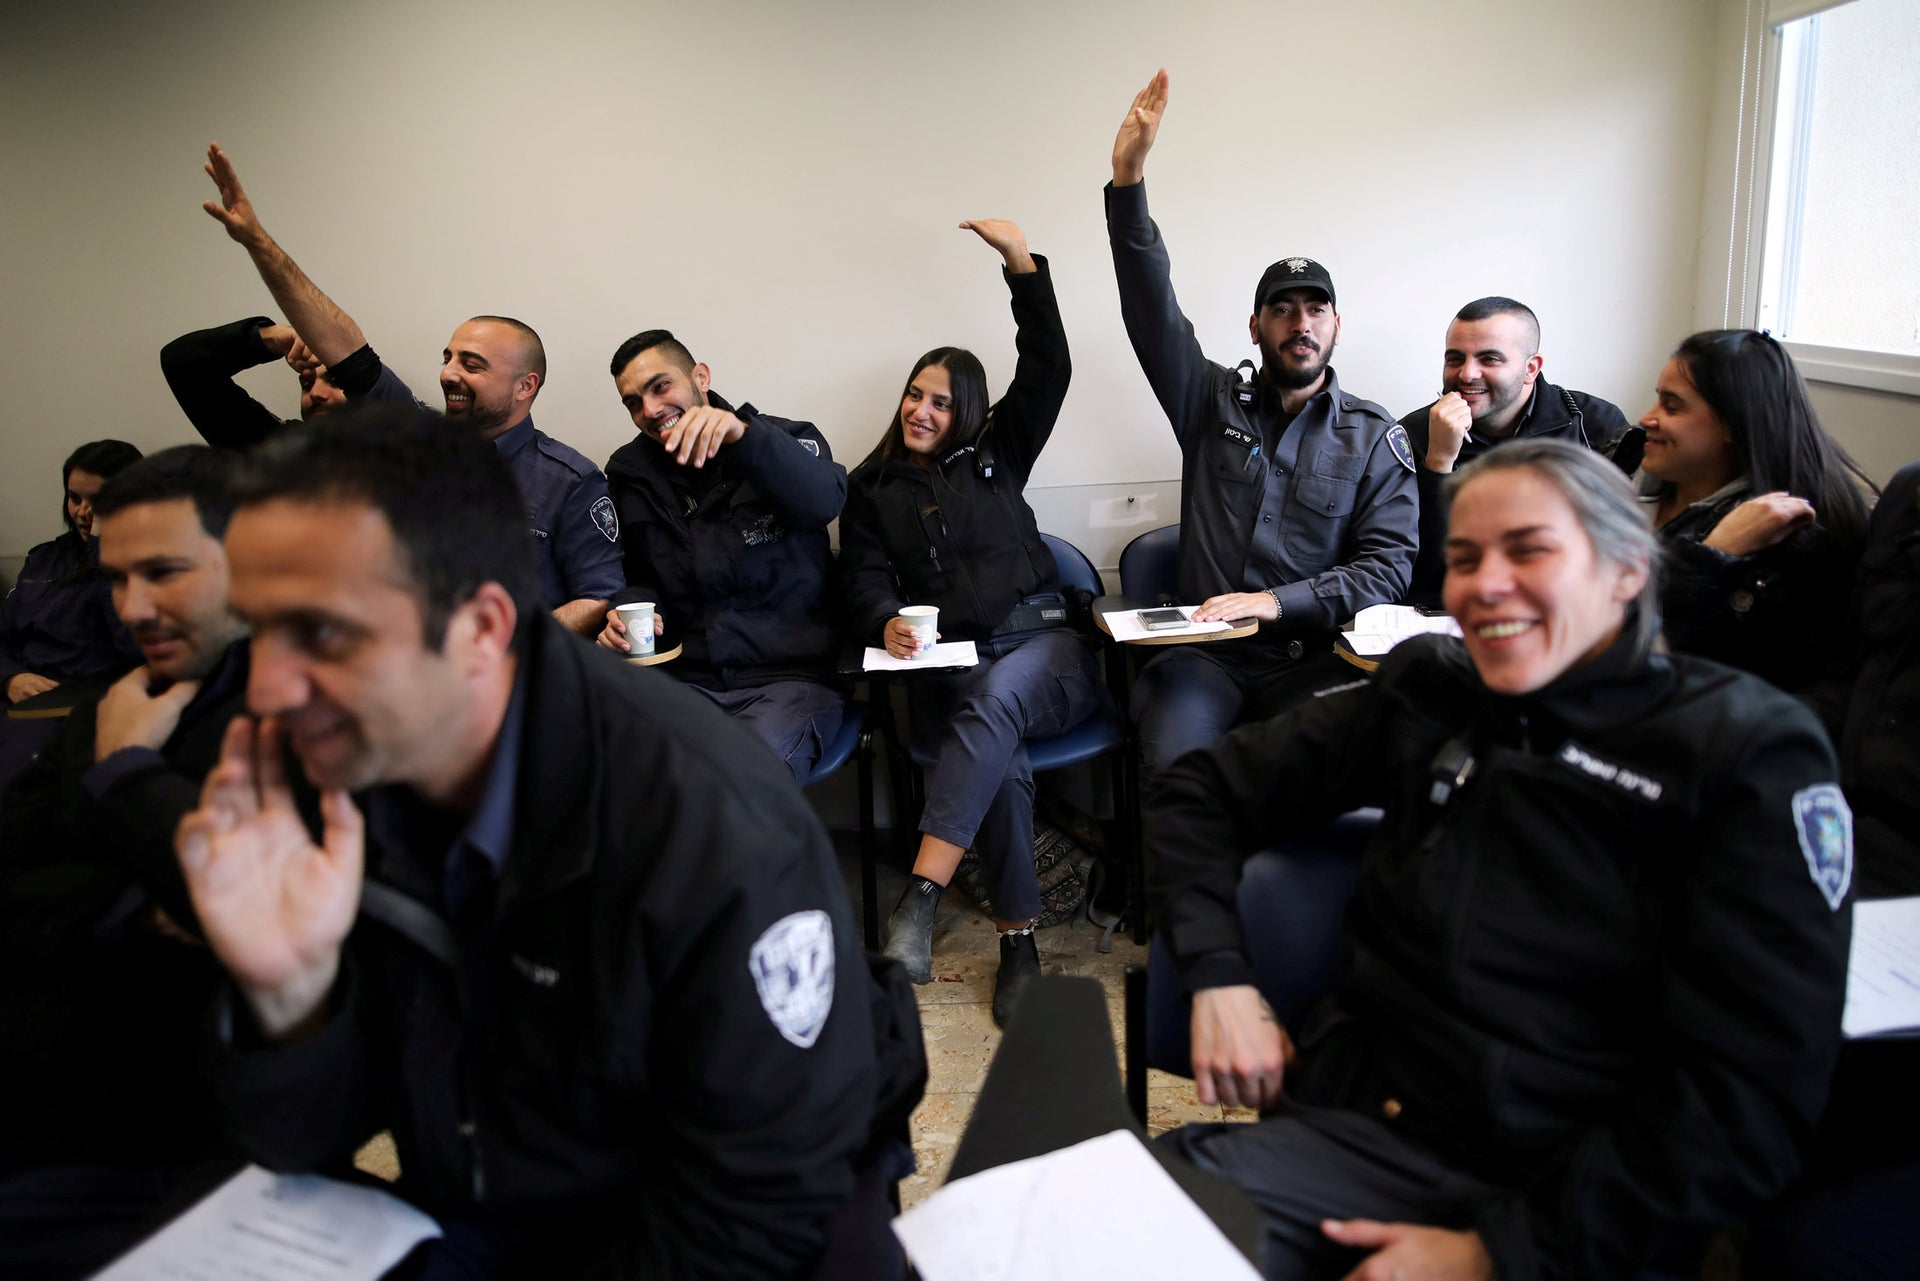 Everyway that I can assist you: Israeli police participate in a special training session ahead of the Eurovision Song contest which will be held in Tel Aviv in May.